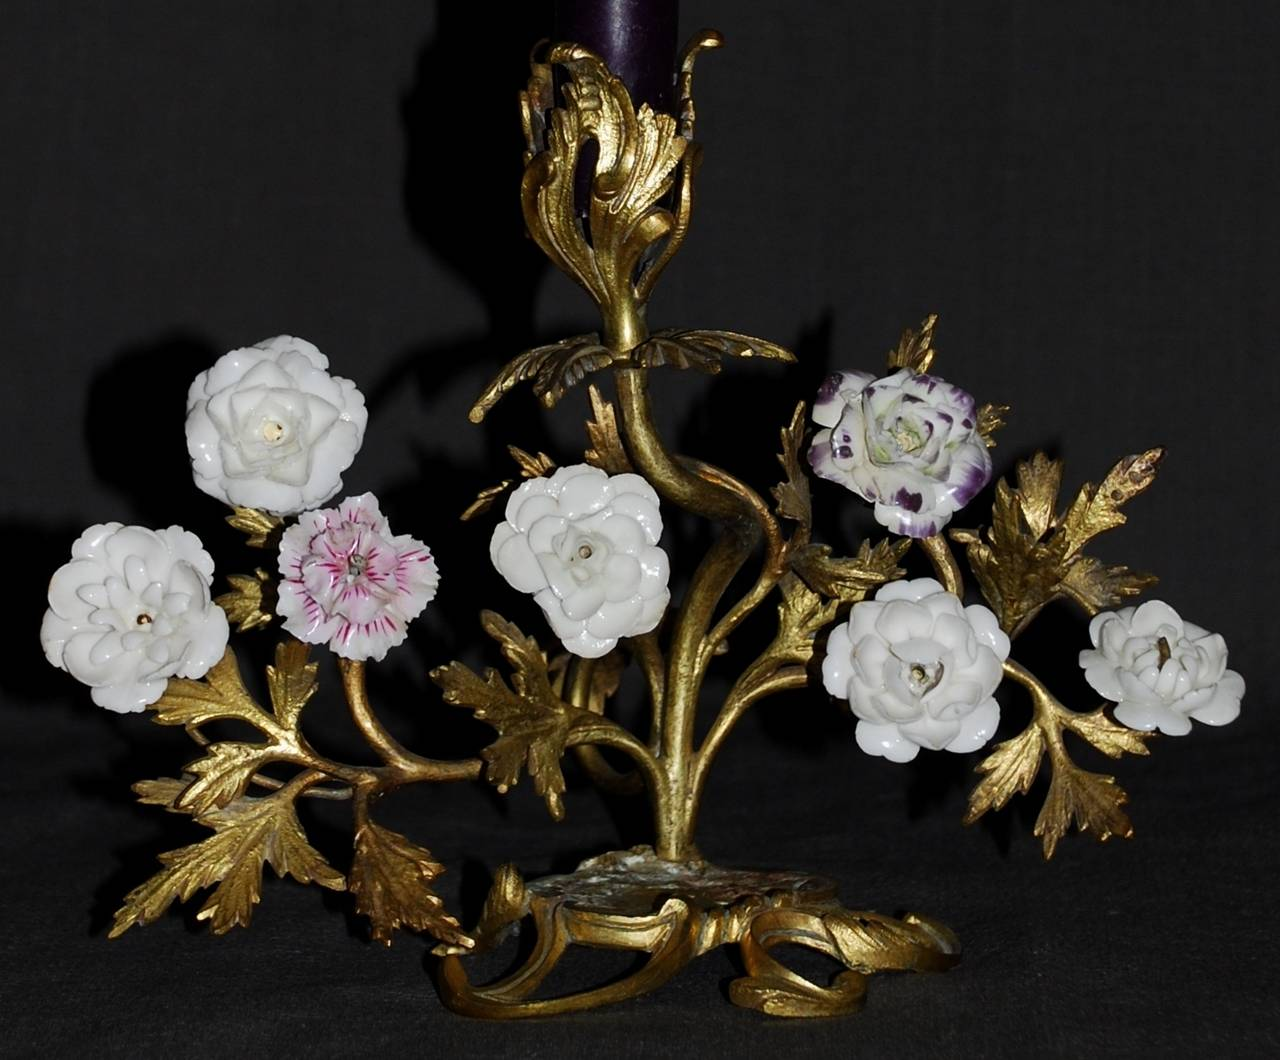 Pair of Louis XV Ormolu Candlesticks with Porcelain Flowers For Sale 1